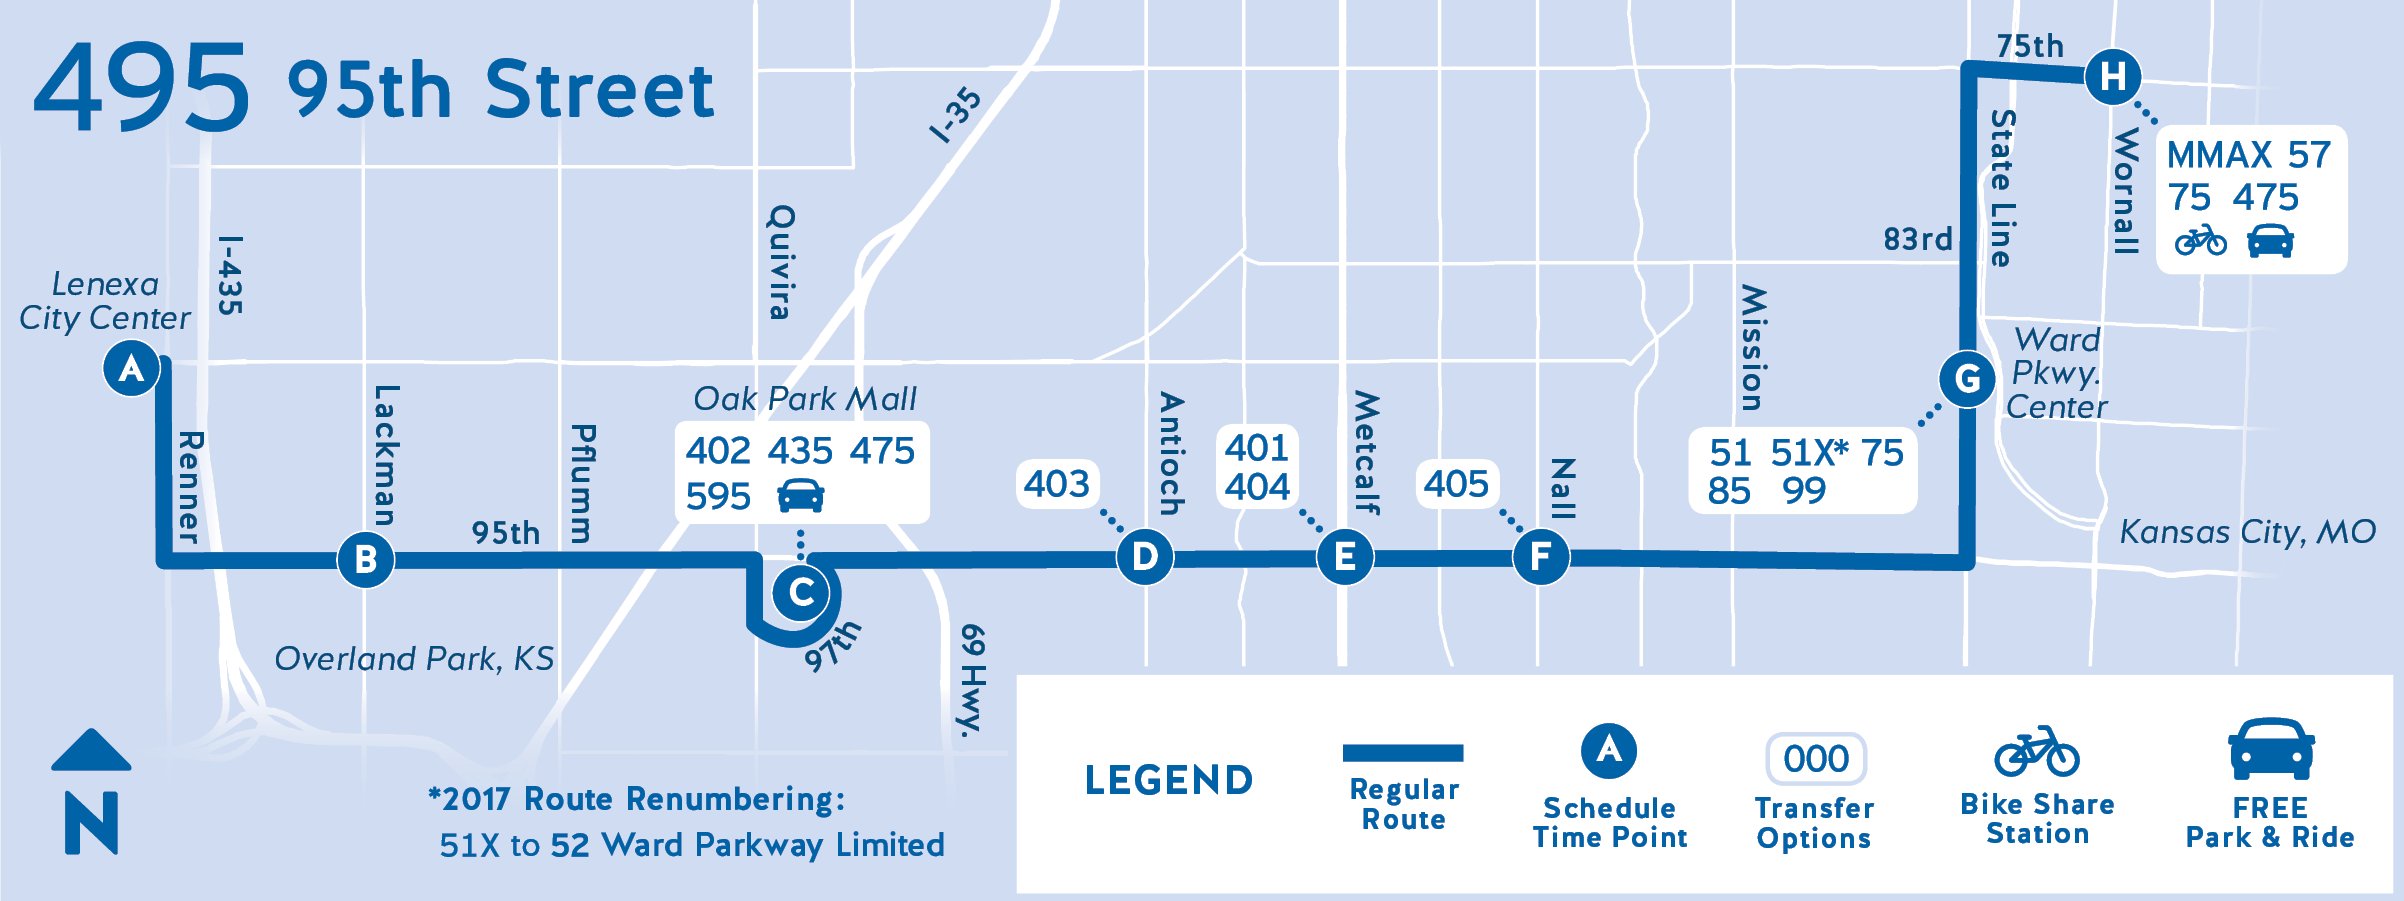 495 map with new service to Lenexa, Kansas